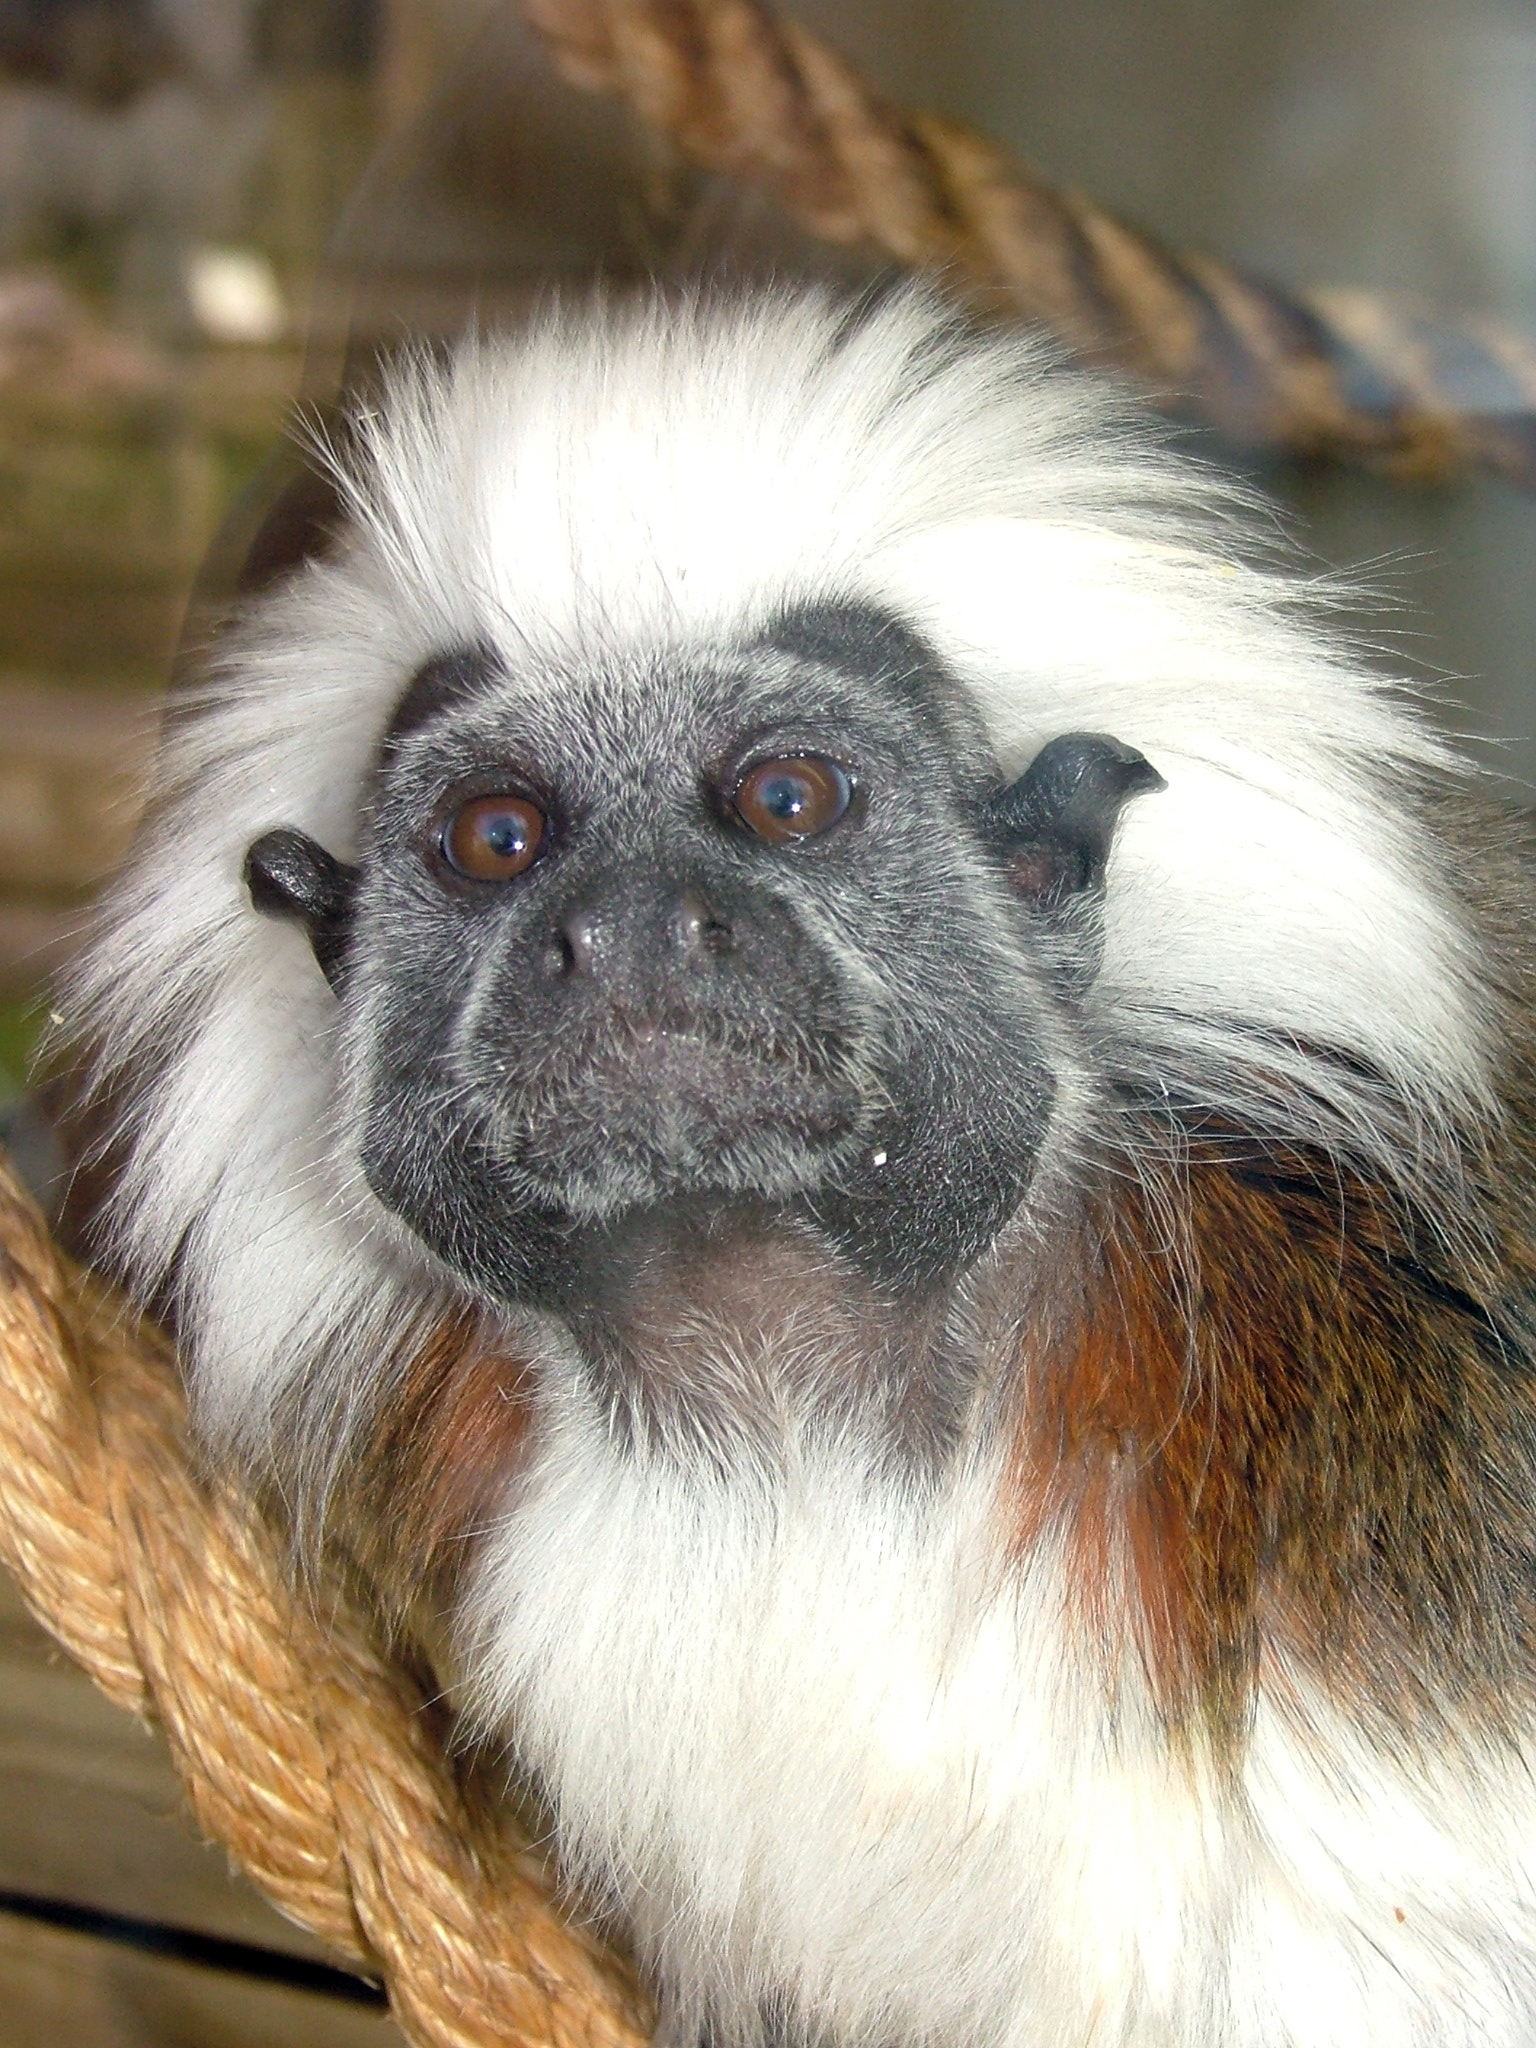 Endangered monkeys stolen from Blackpool zoo